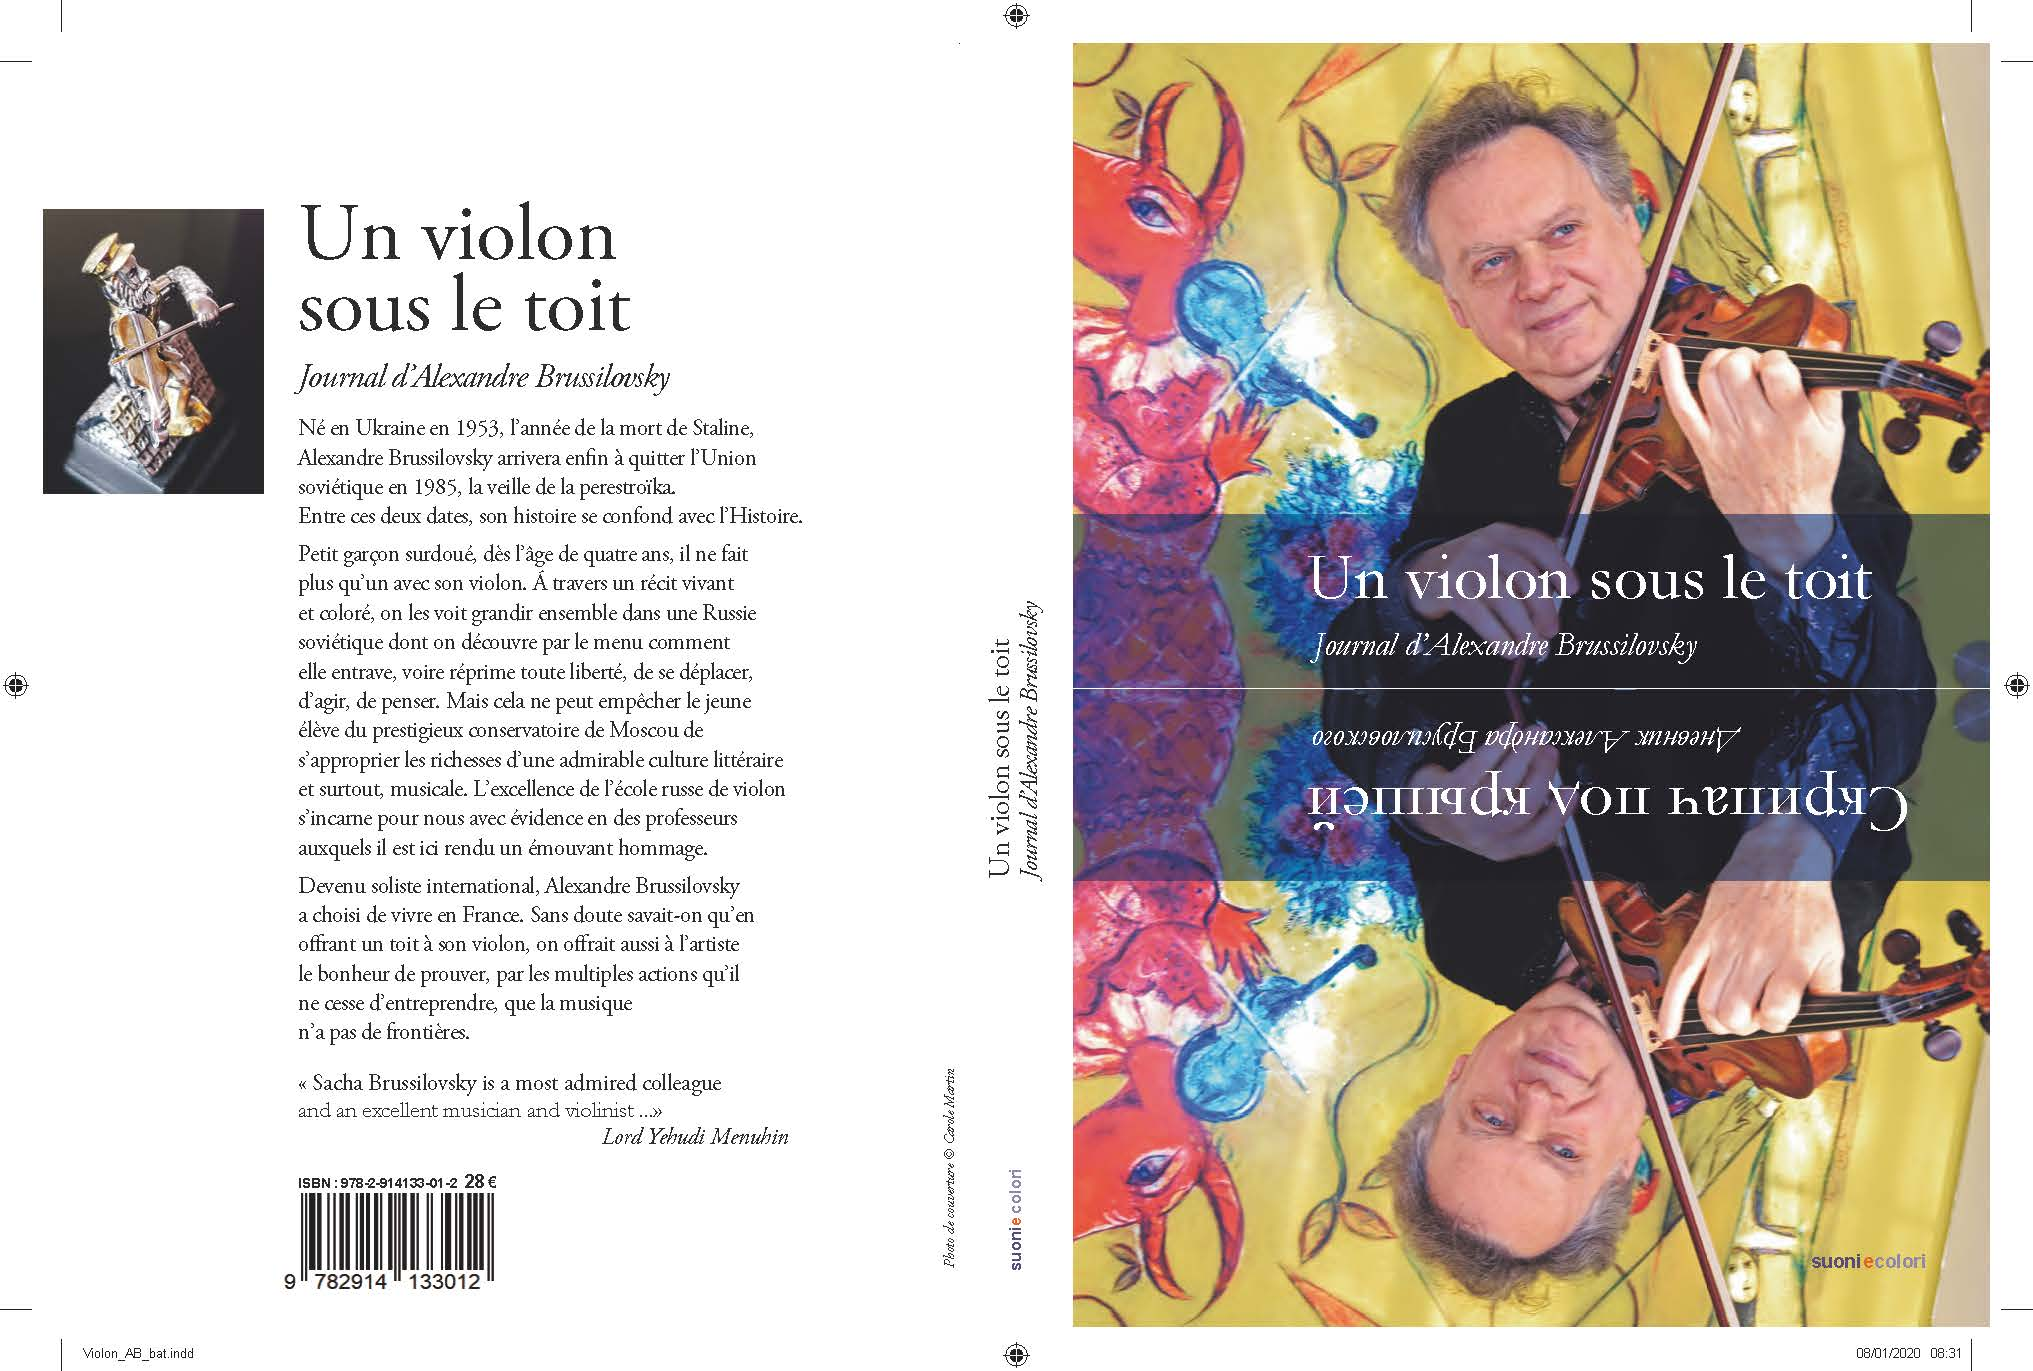 Libro Un Violon sous le Toit version Francesa